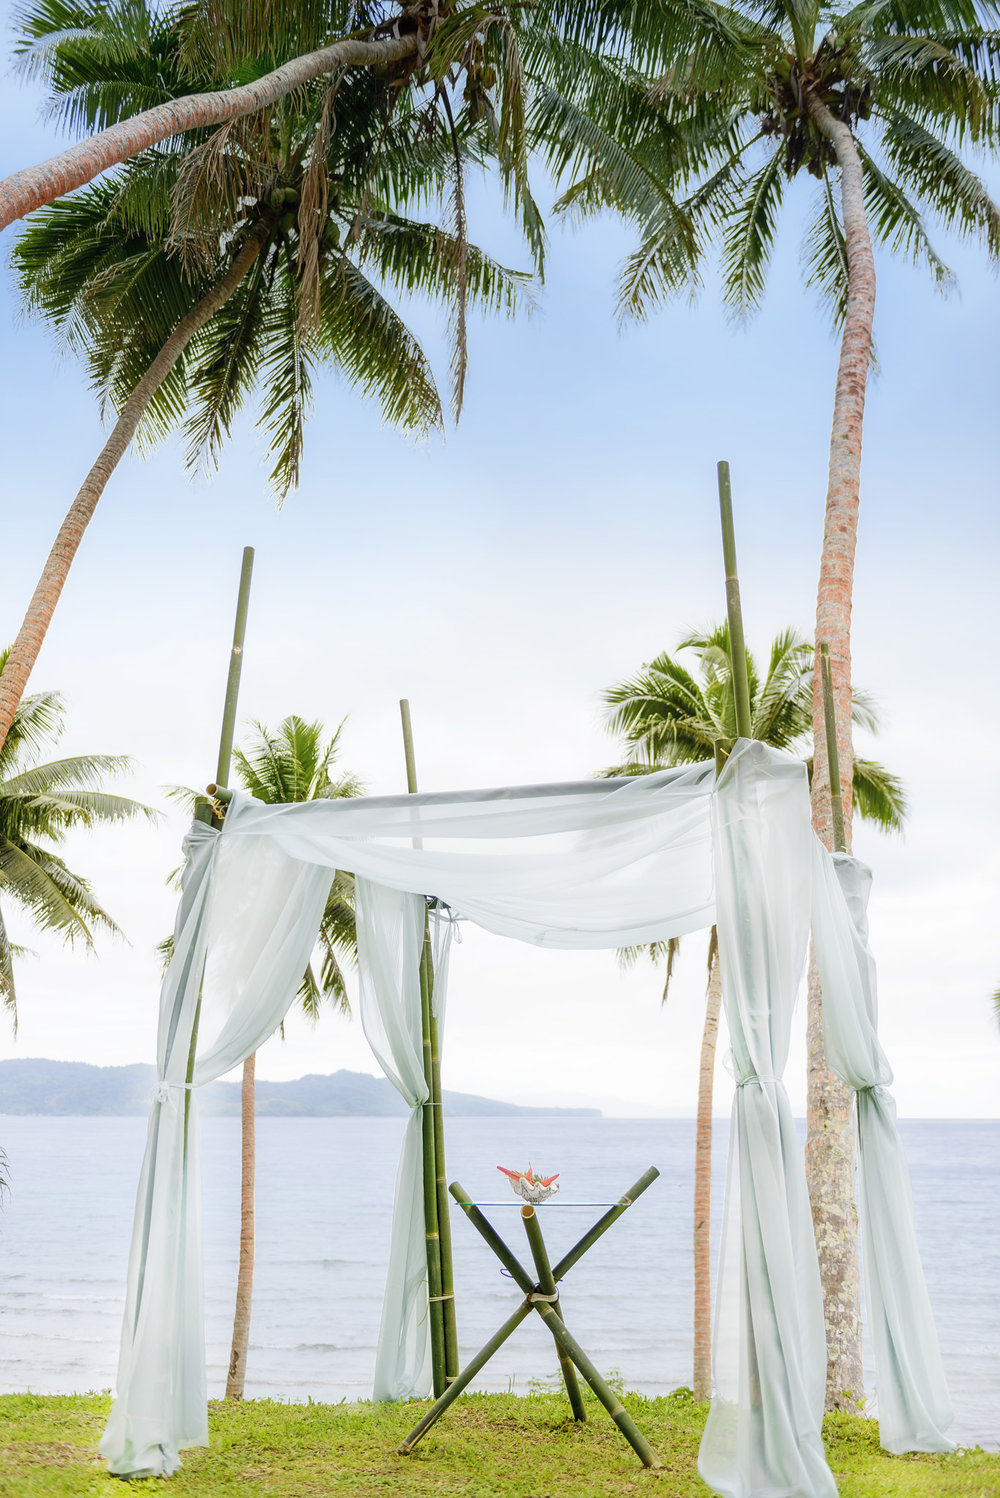 Elope in Fiji - The Remote Resort Fiji Islands - Luxury wedding or elopement